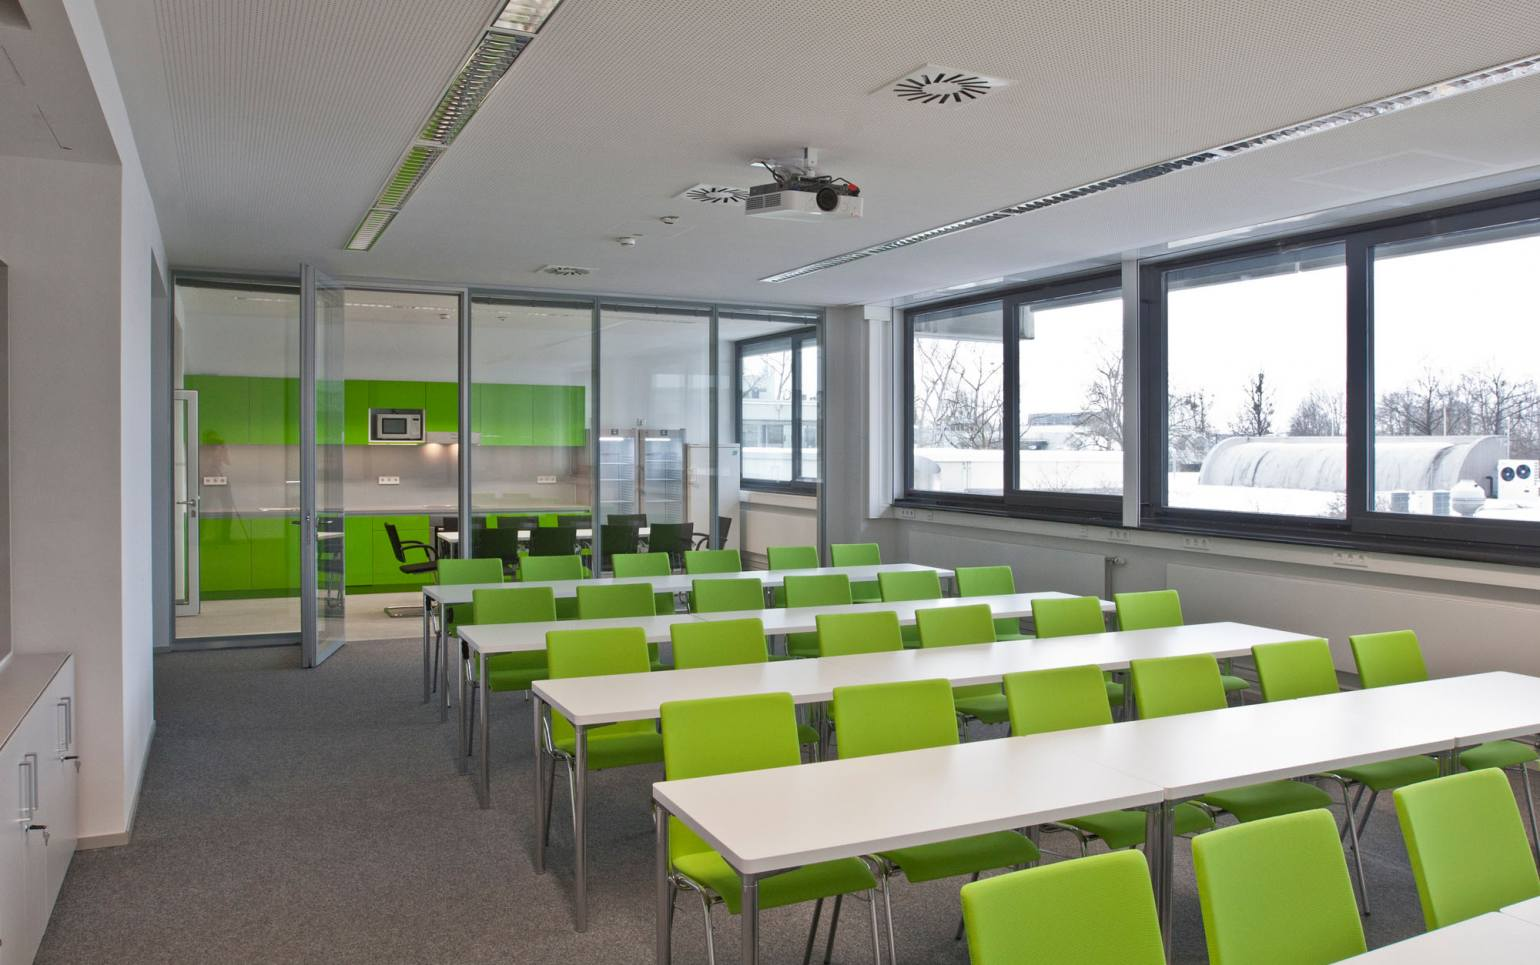 fritsch-tschaidse-architekten-MR-05_IMG_D2324_Kai_BT_D